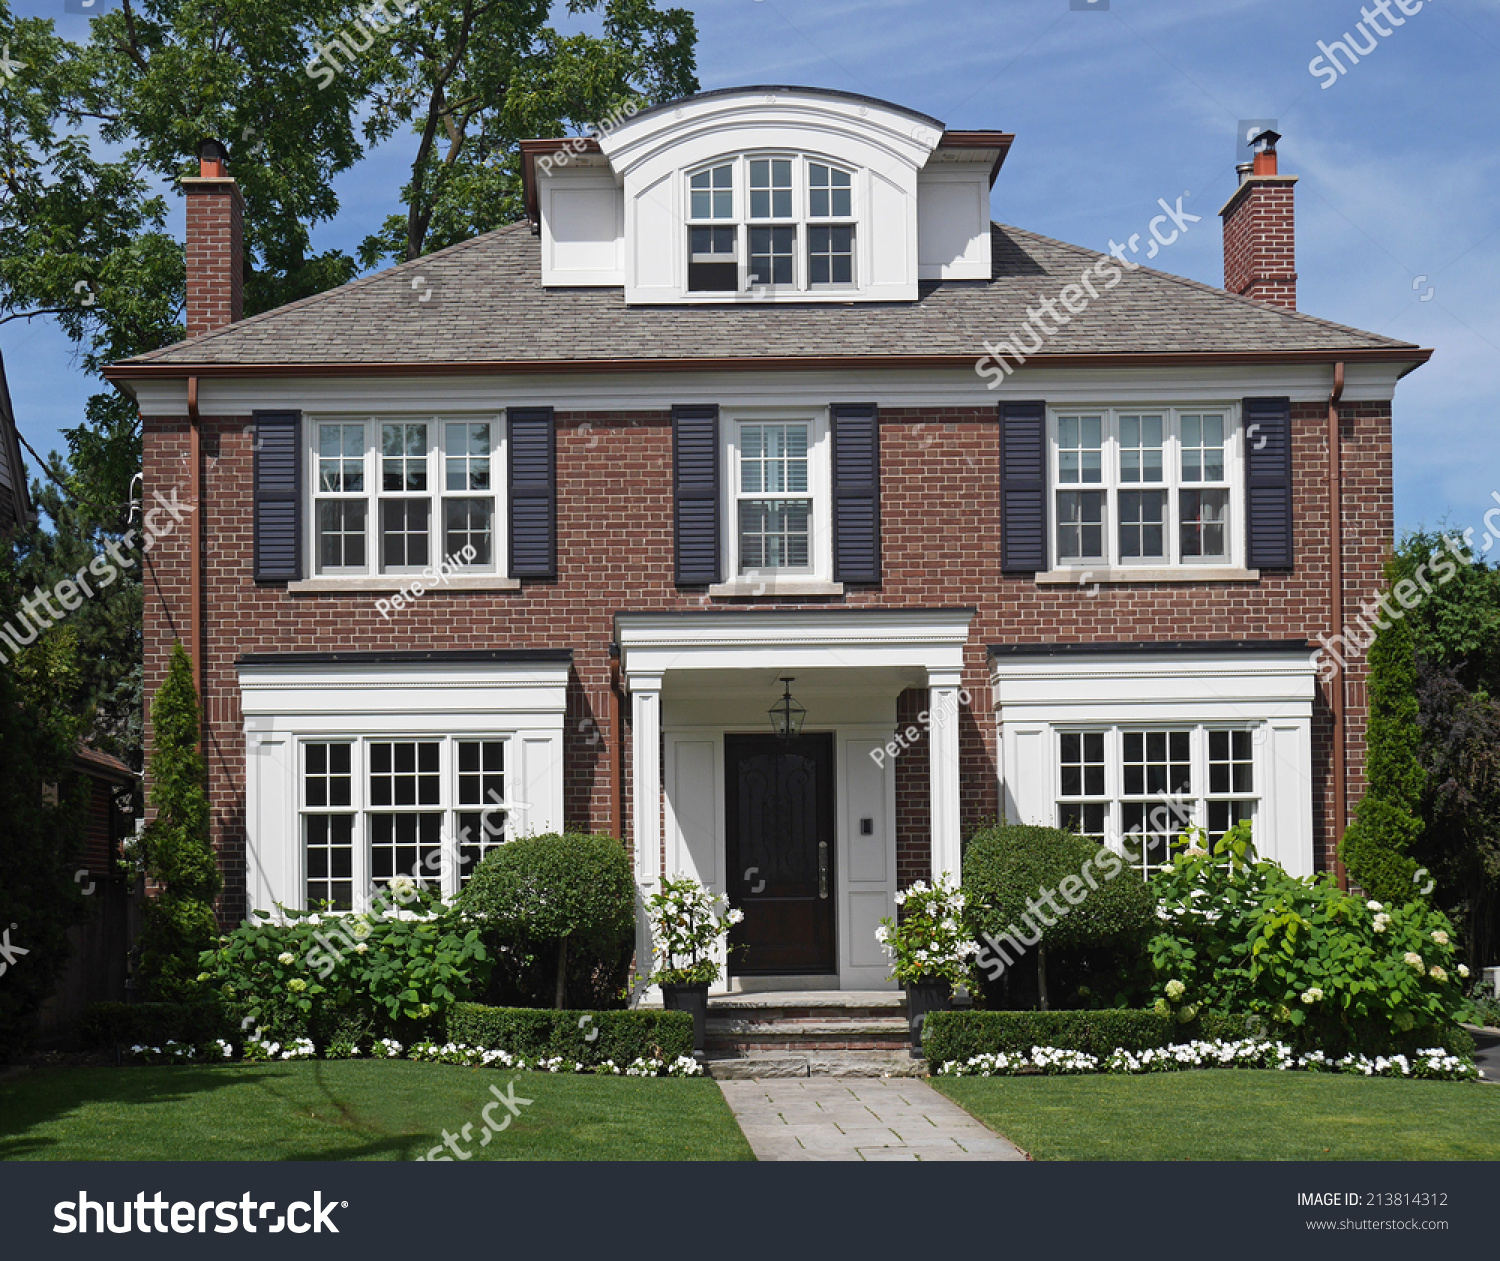 Traditional two story brick house with dormer window stock for Traditional 2 story house